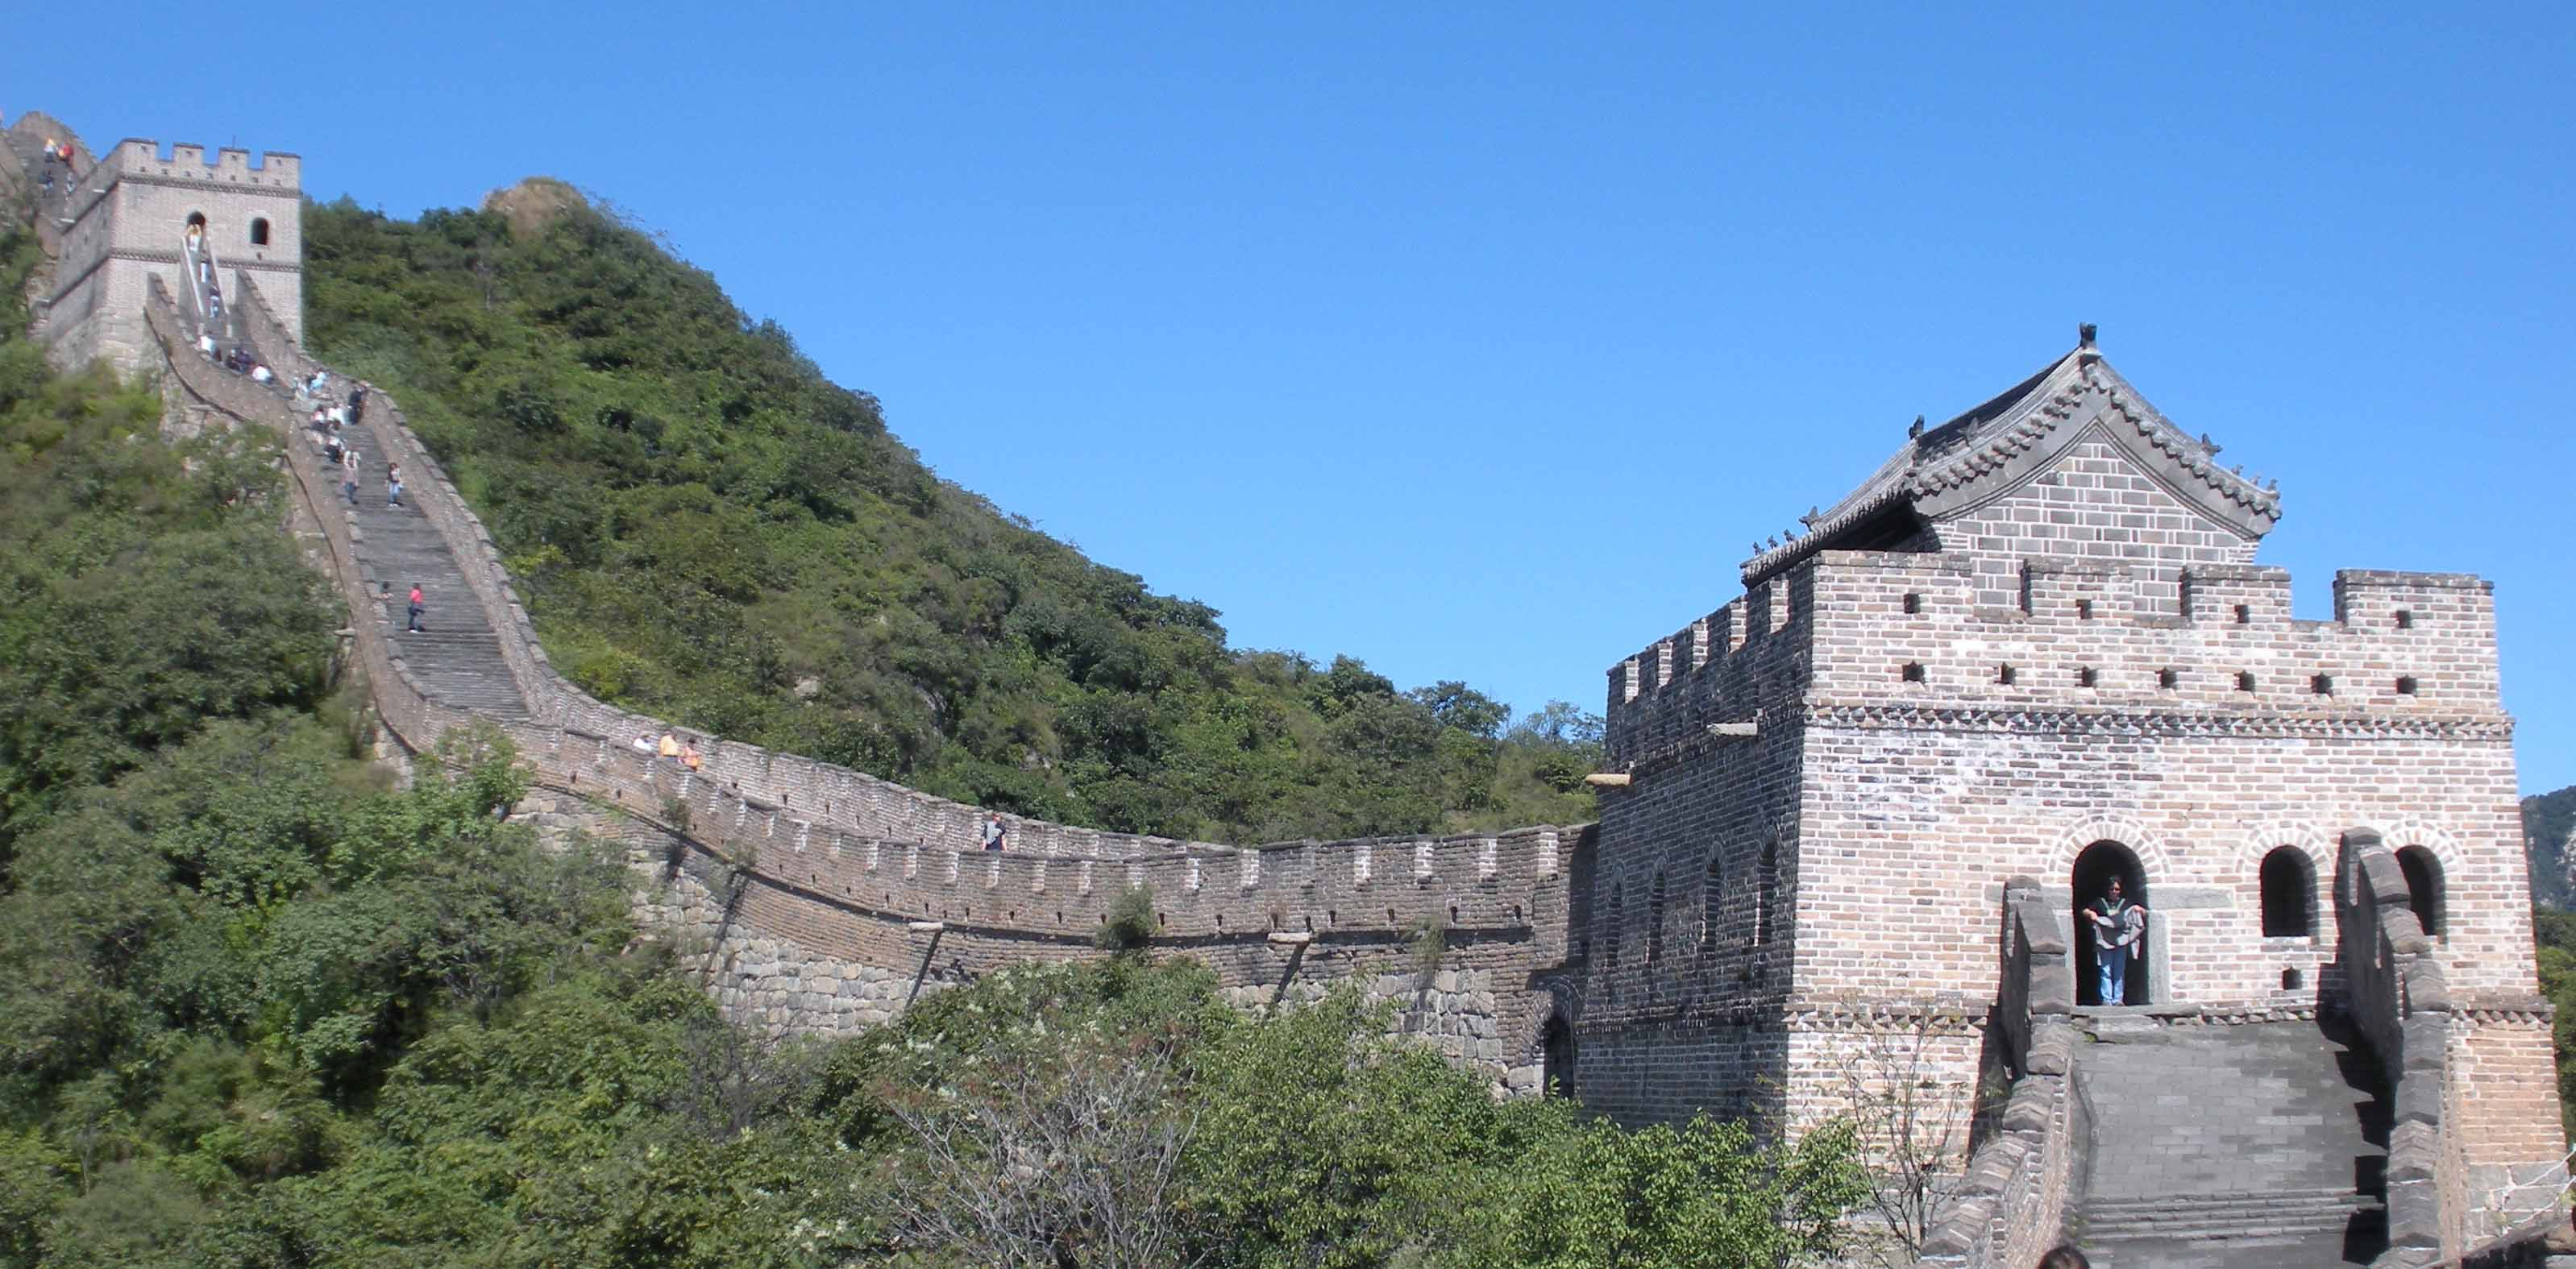 great wall of china essays The great wall of china ( pinyin: wànlǐ chángchéng) is a series of stone and earthen fortifications in northern china, built originally to protect the northern borders of the chinese empire against intrusions by various nomadic groups such as the xiongnu from the north and rebuilt and maintained between the 5th century bc and the 16th century.